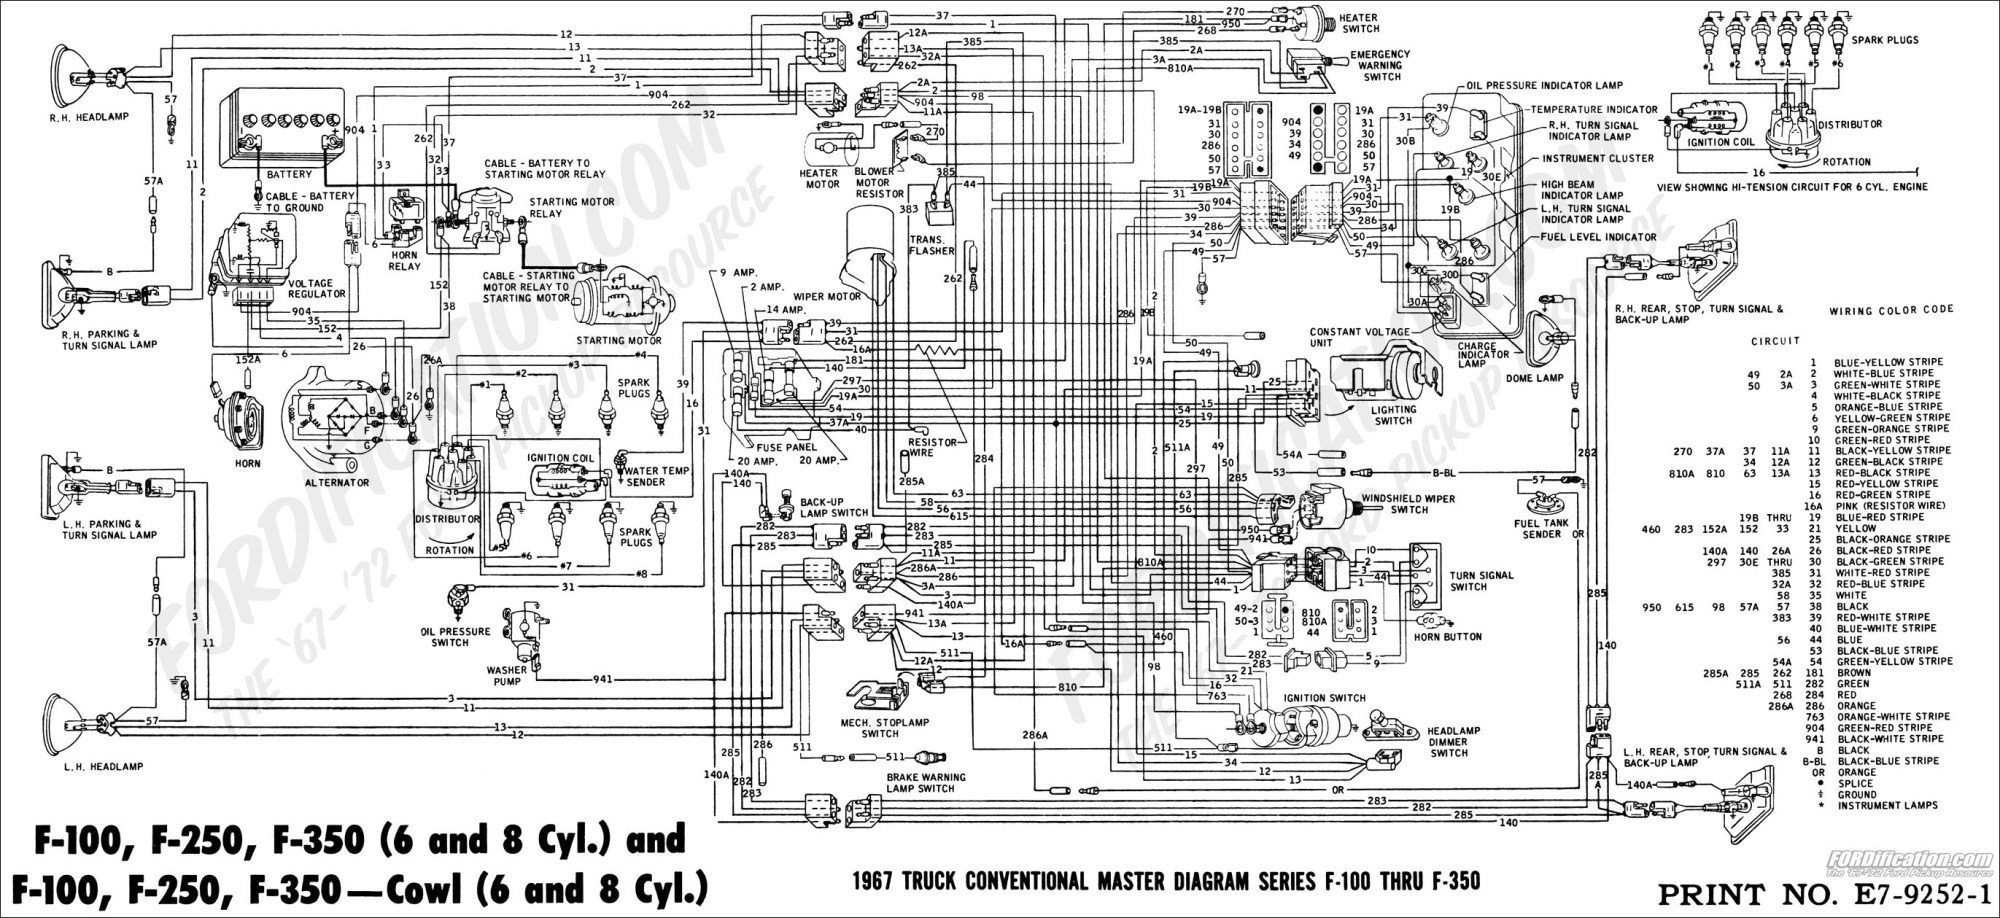 hight resolution of 1999 ford f150 wiring schematic wiring diagrams mon 1999 ford f150 4x4 wiring diagram 99 ford f150 wiring diagram